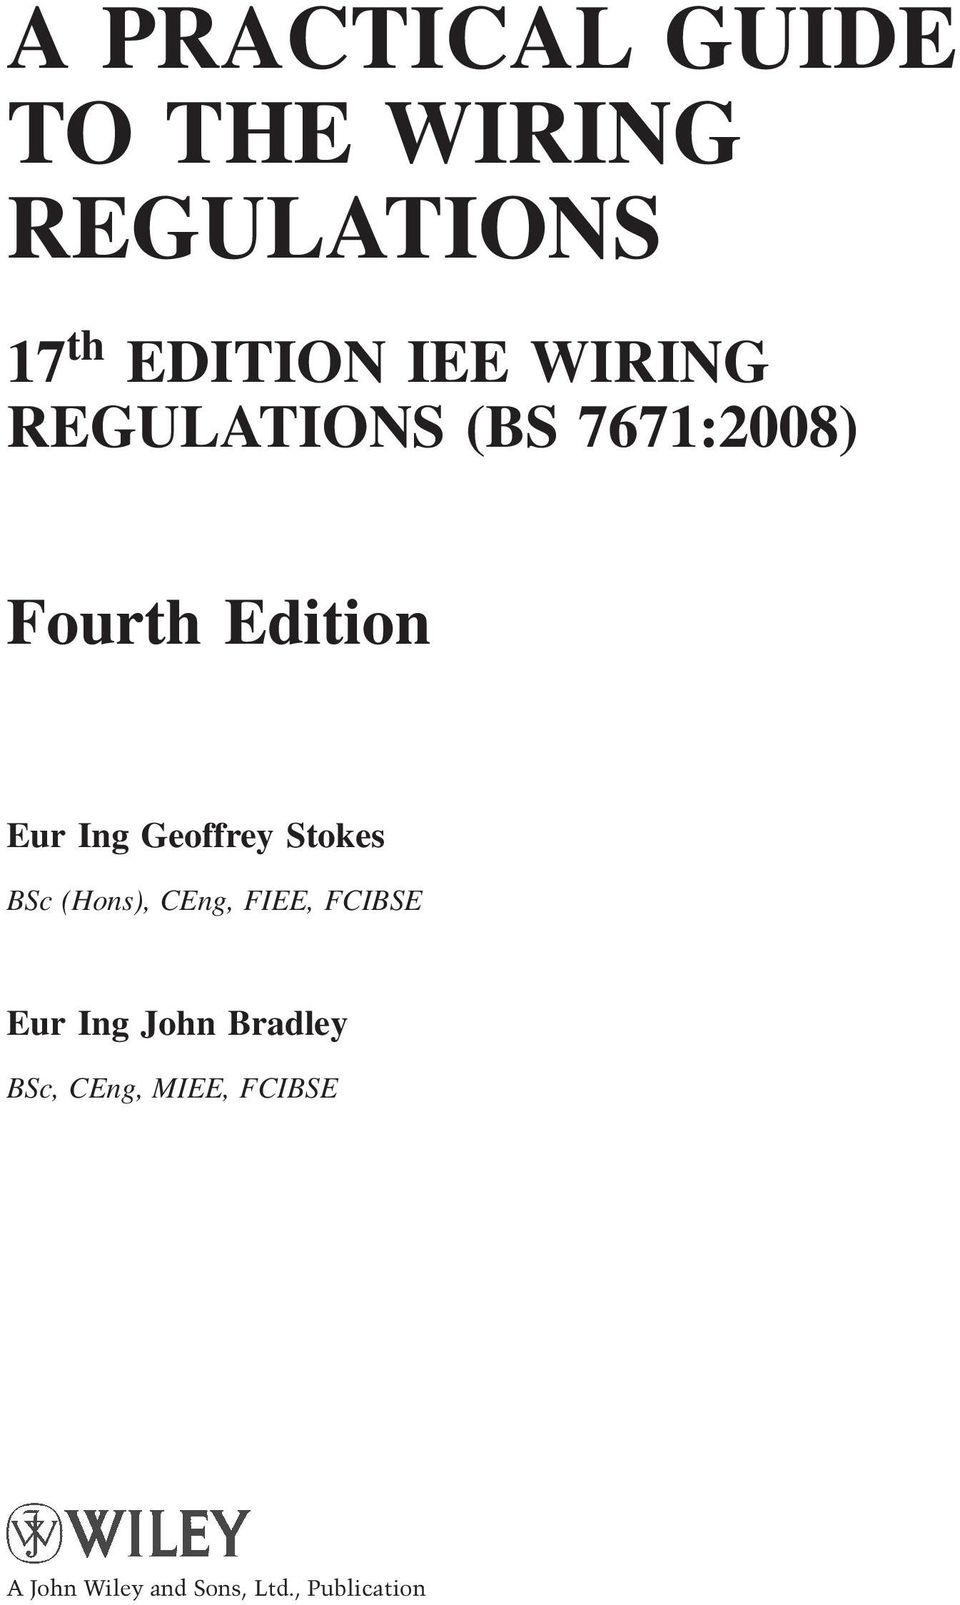 A Practical Guide To The Wiring Regulations Pdf Iet Book Geoffrey Stokes Bsc Hons Ceng Fiee Fcibse Eur Ing John